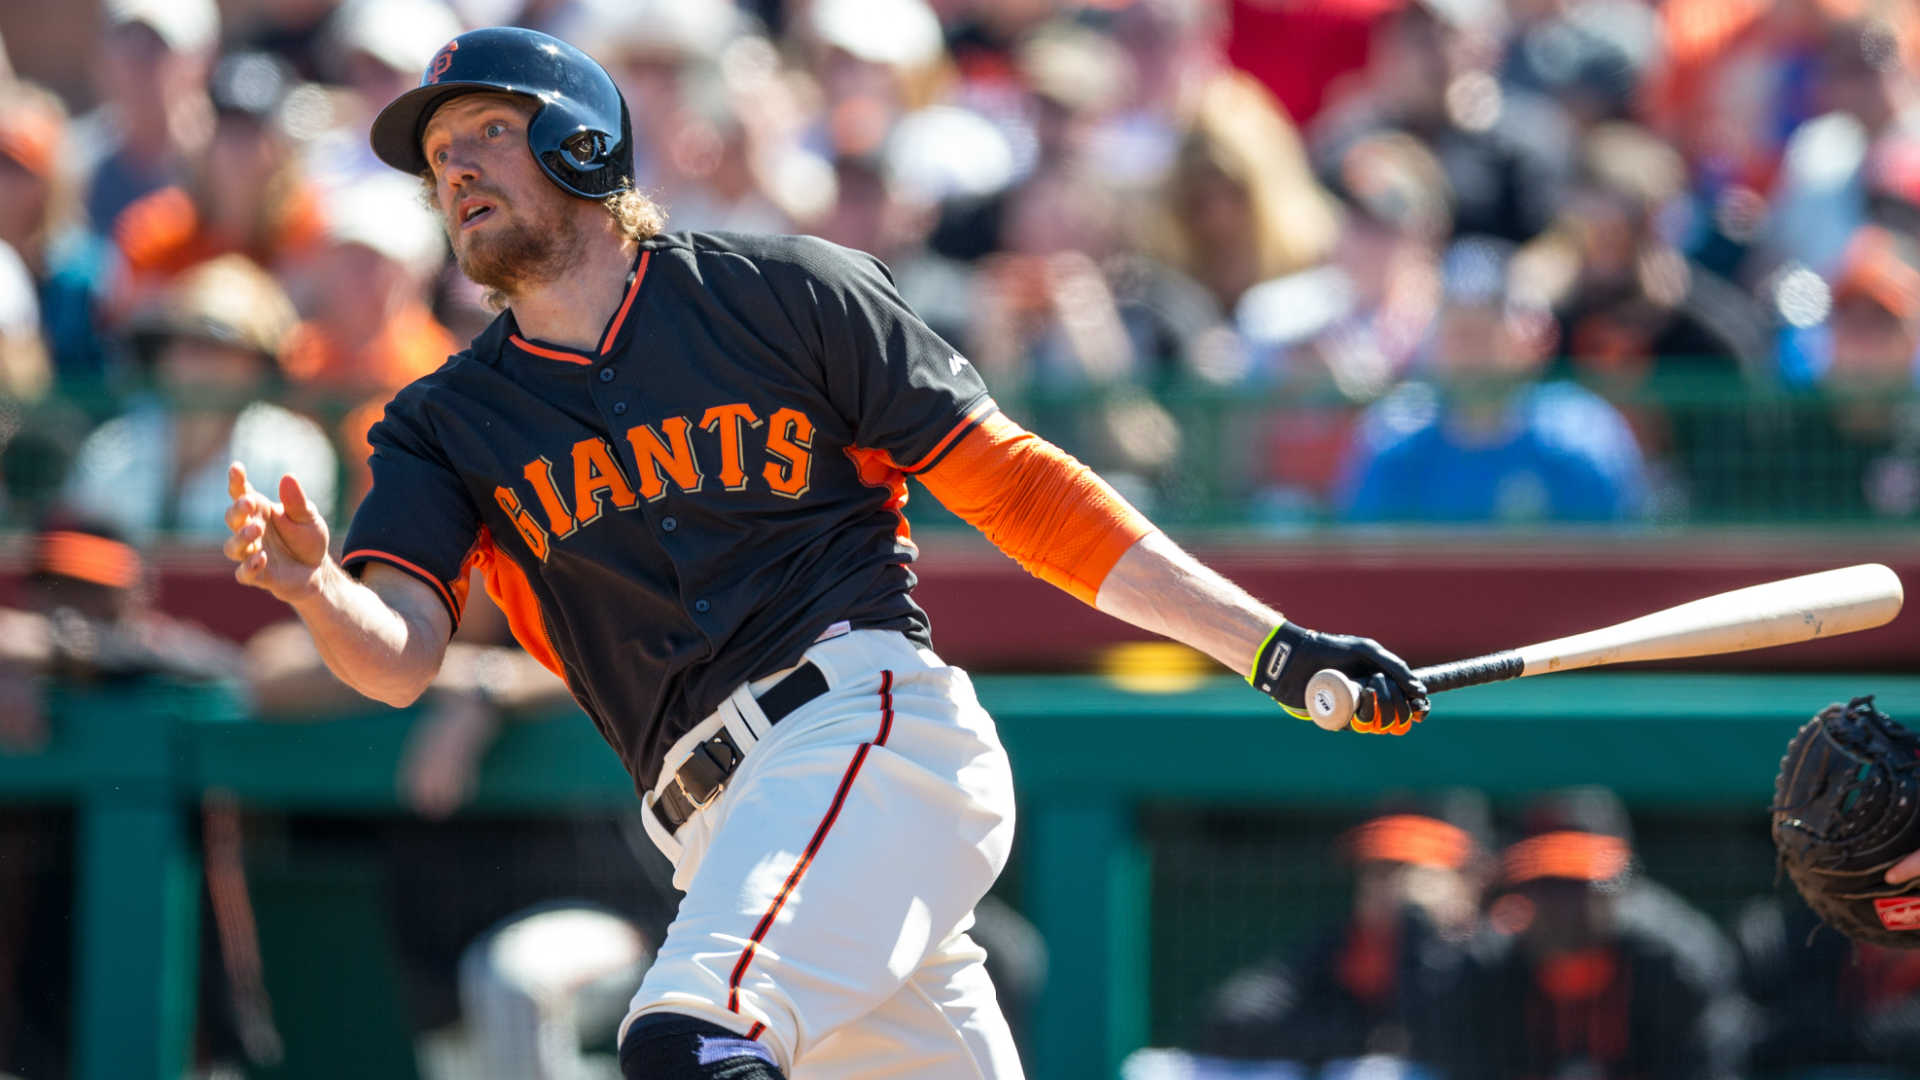 Hunter-Pence-FTR-0305-GI.jpg